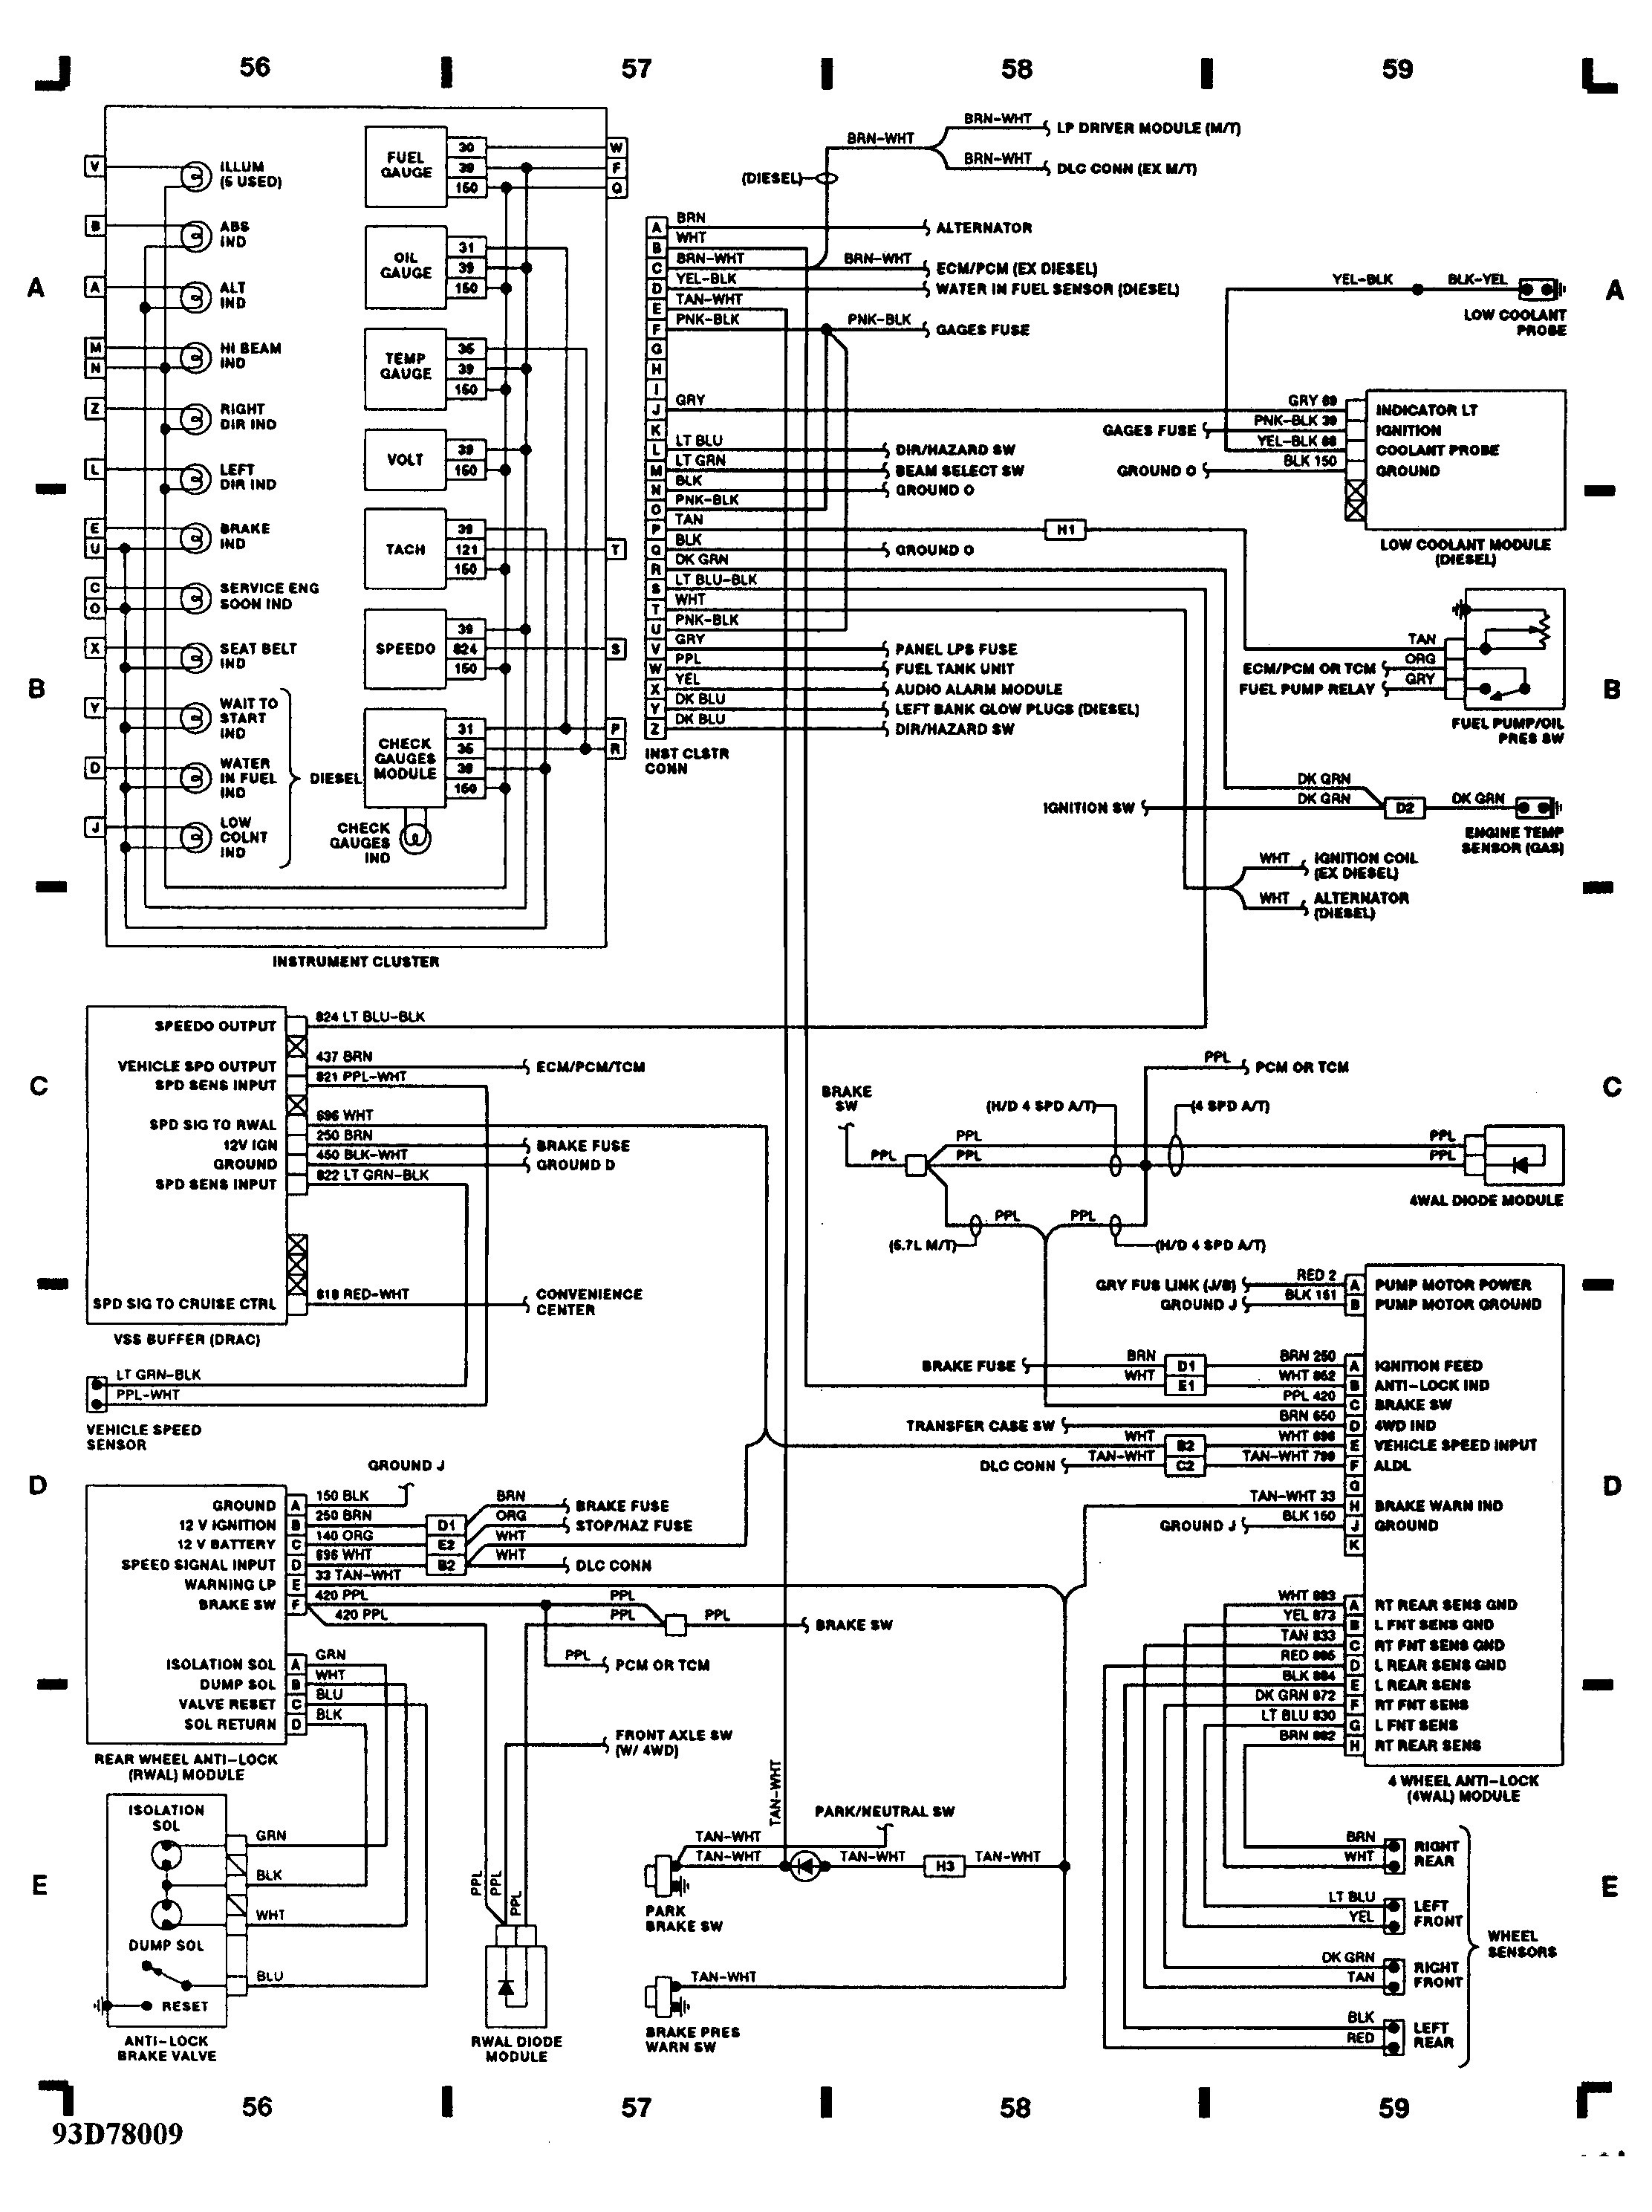 chevy silverado wiring diagram Download-Chevy Silverado Wiring Diagram 20-f